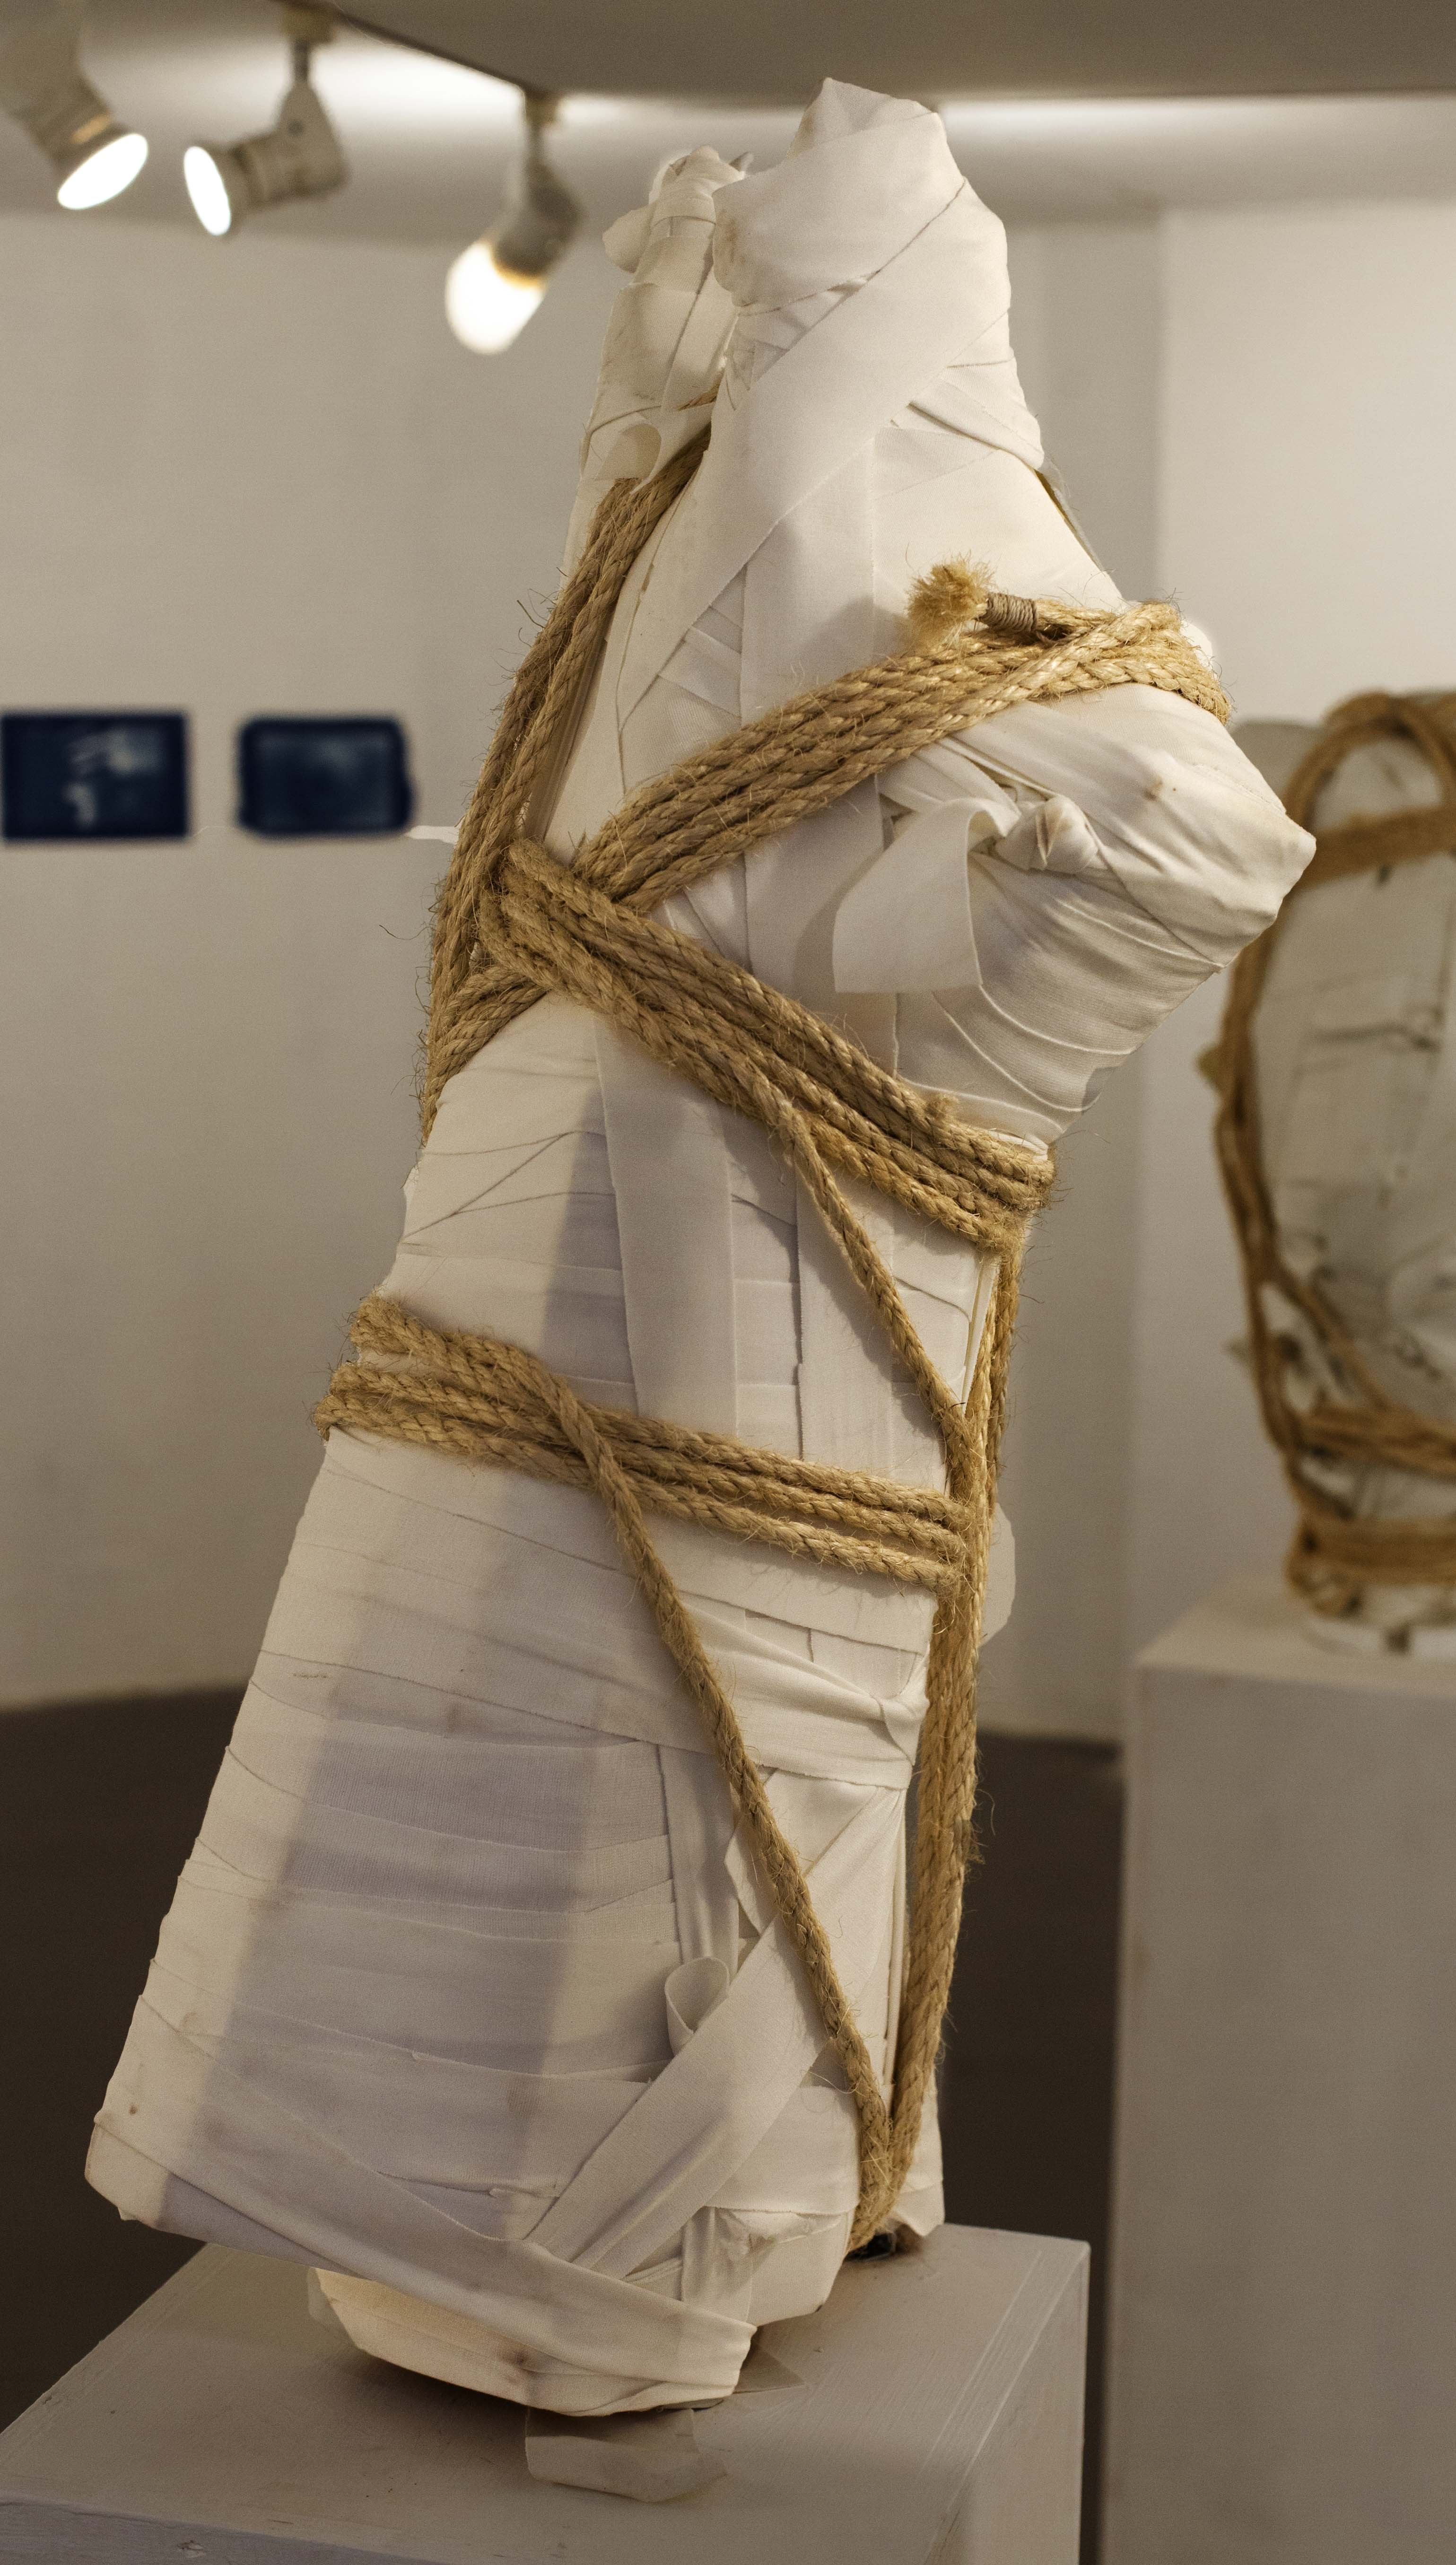 'wrapped' number 2, 2020 87x40x40 cm', f